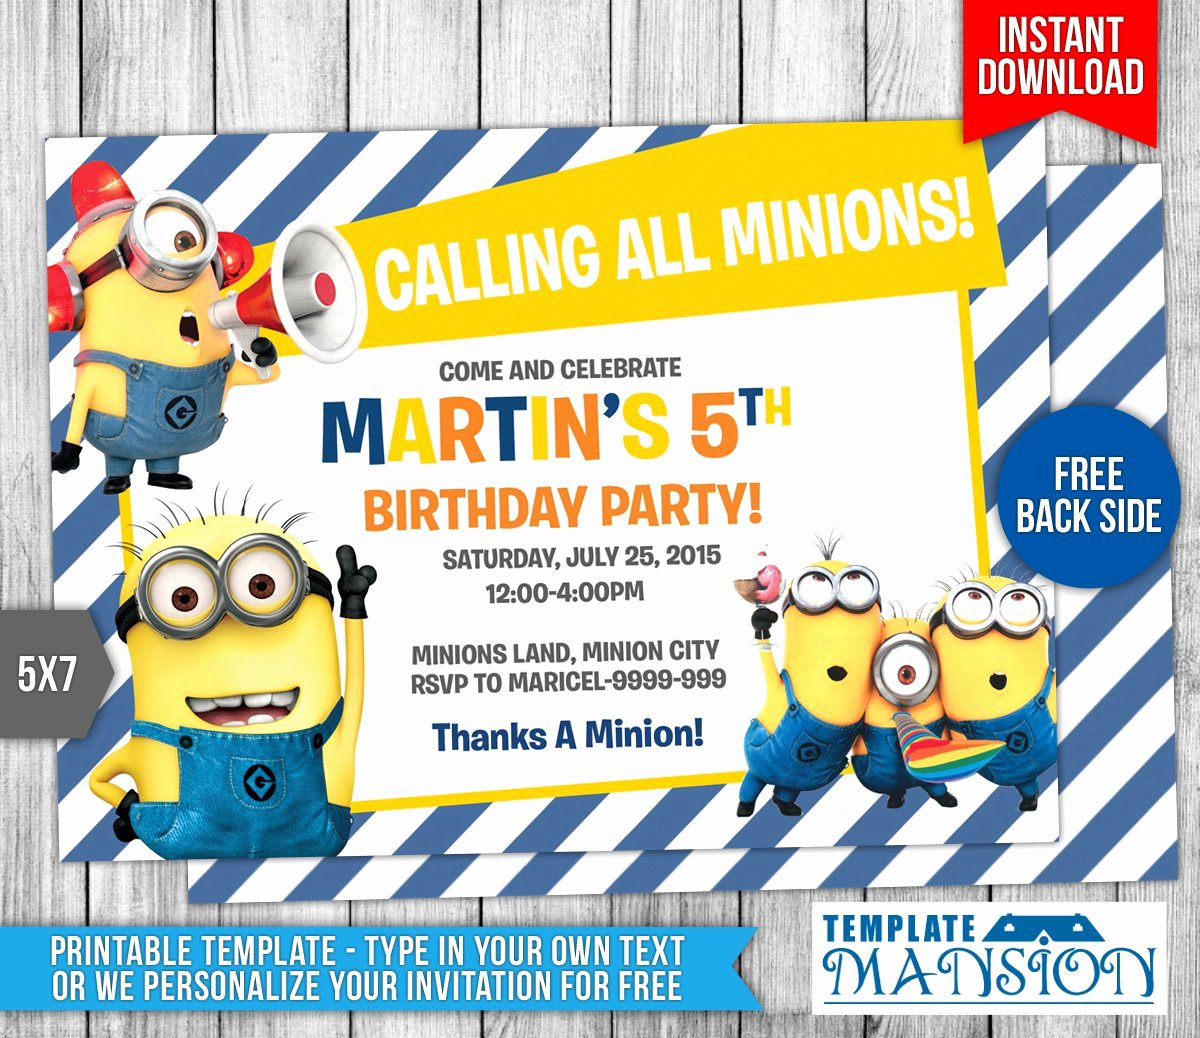 Minions Birthday Card Template Fresh Minion Birthday Invitations